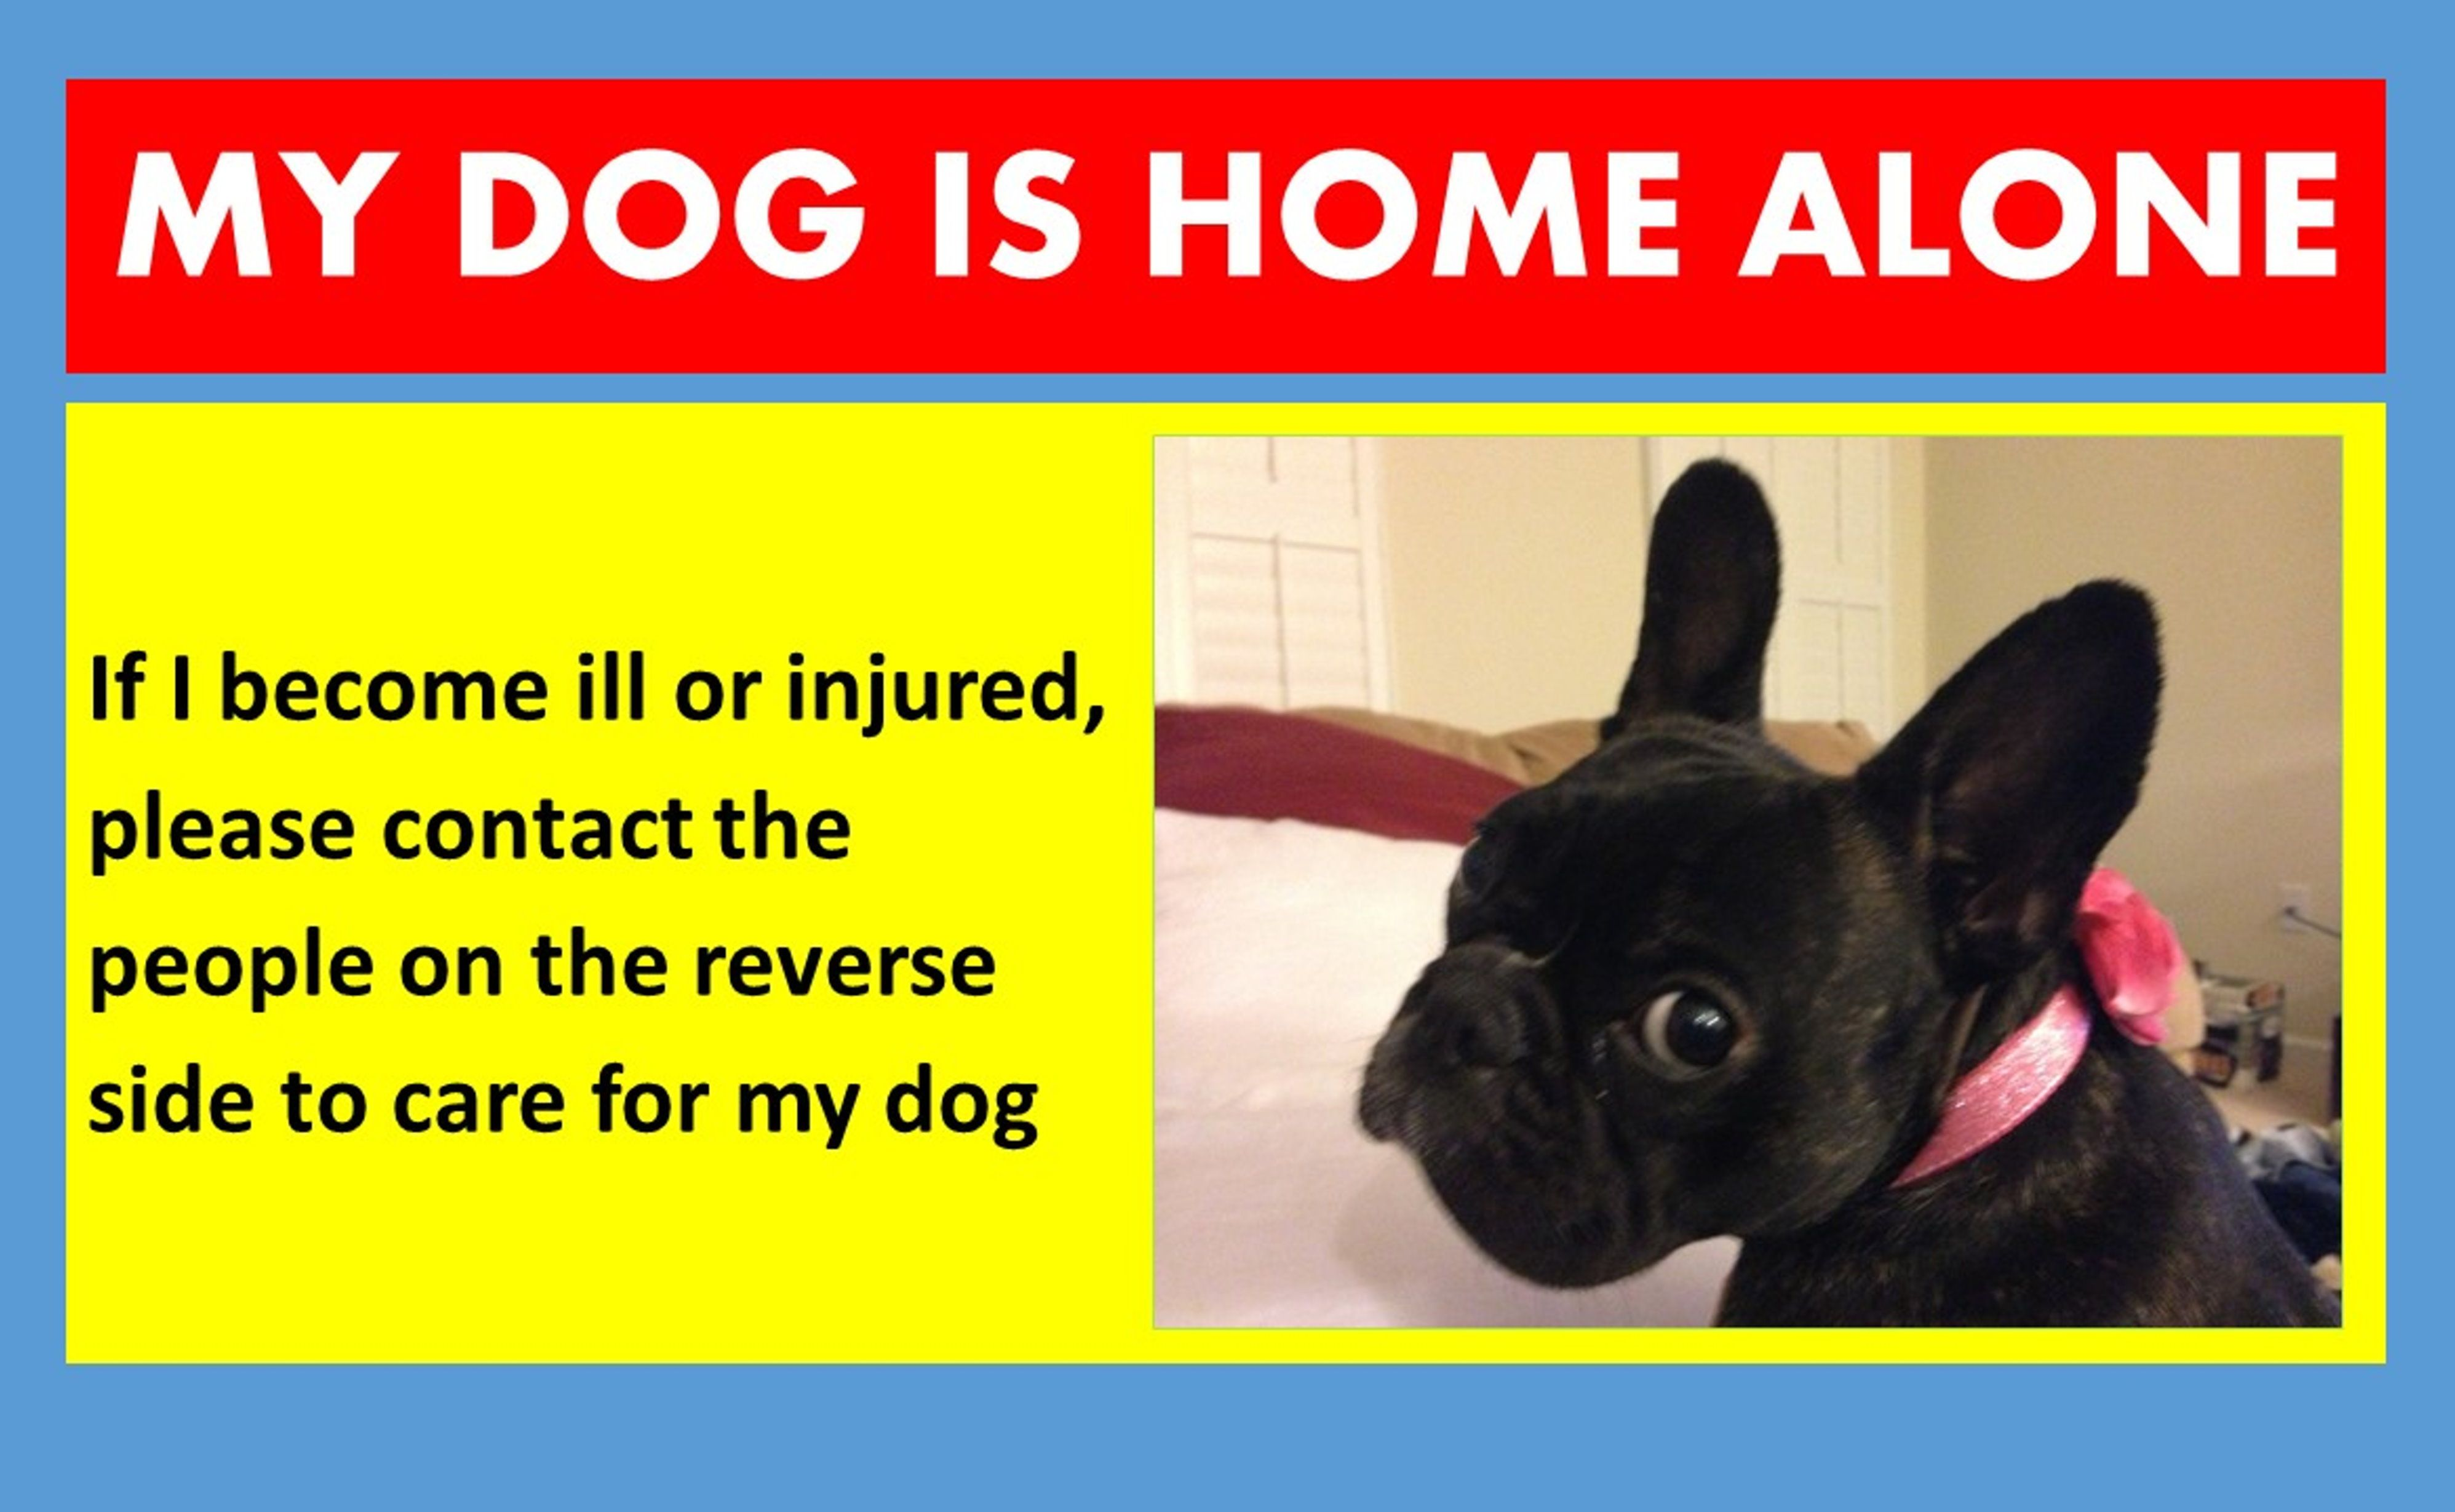 I Made My Own Dog Emergency Wallet Card But You Can Buy One By Following The Link Ernie Dog Emergency Kids Health Card Wallet